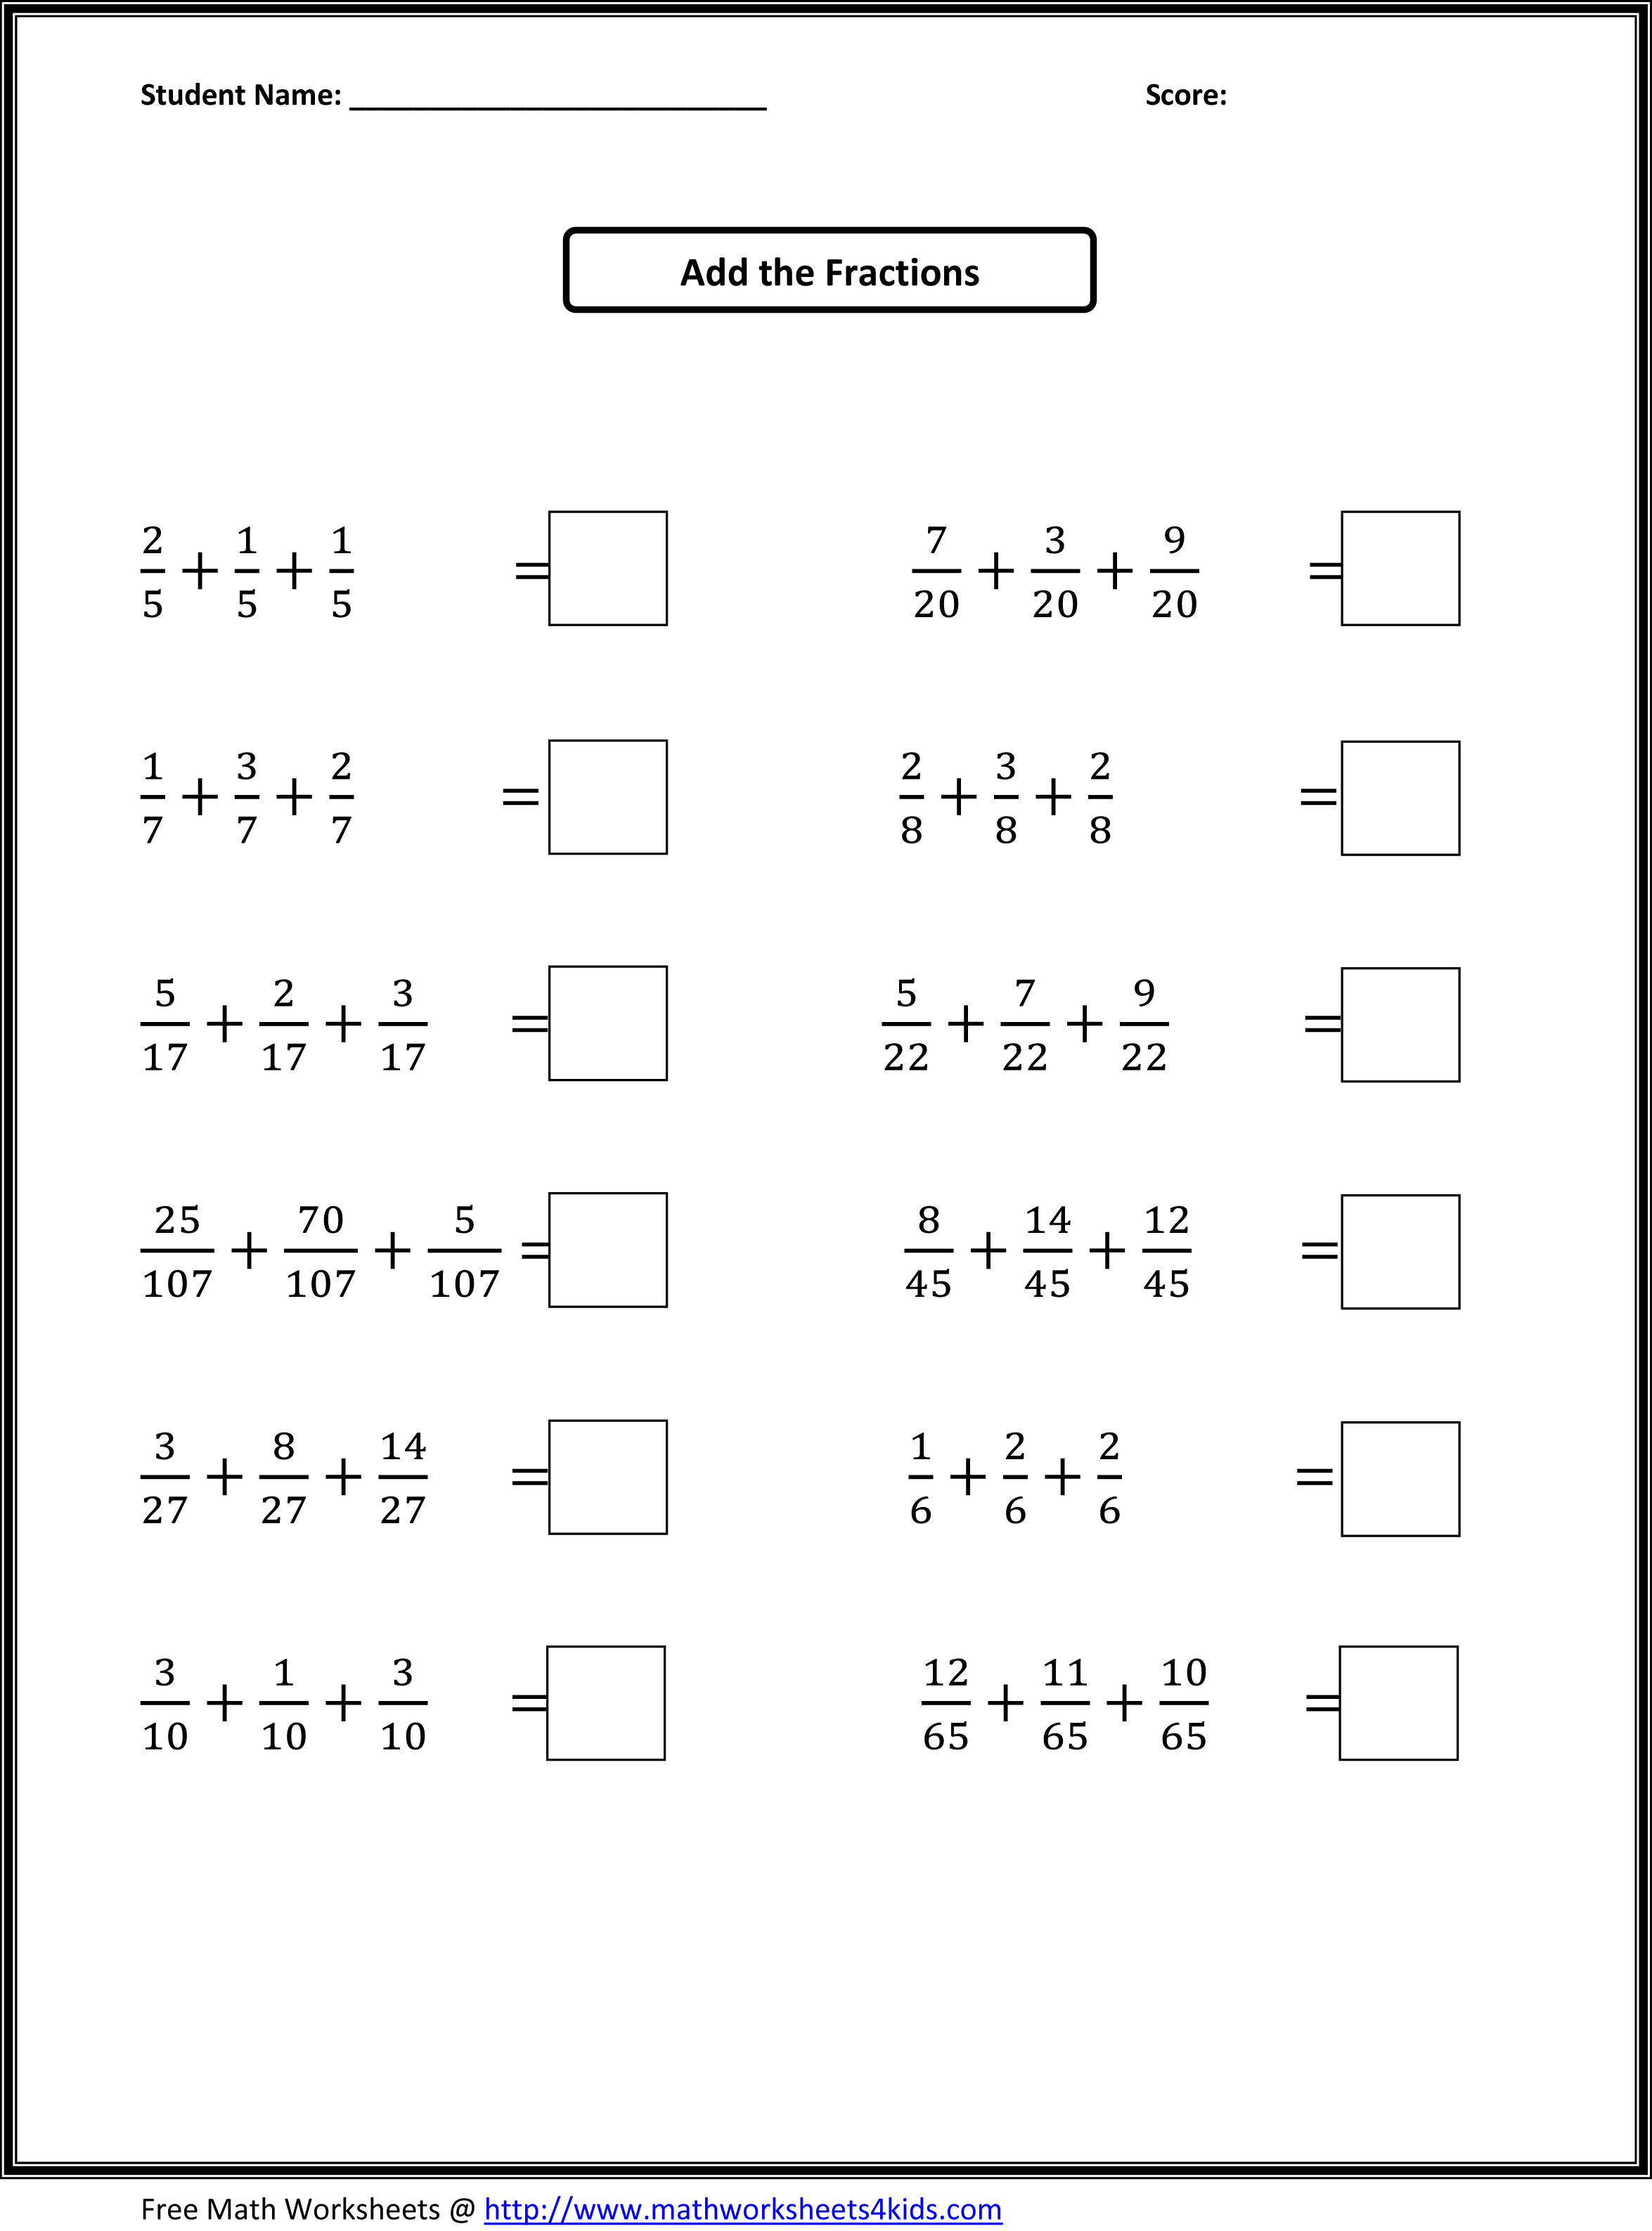 4th Grade Math Worksheets Multiplying Fractions – 4th Grade Math Worksheets